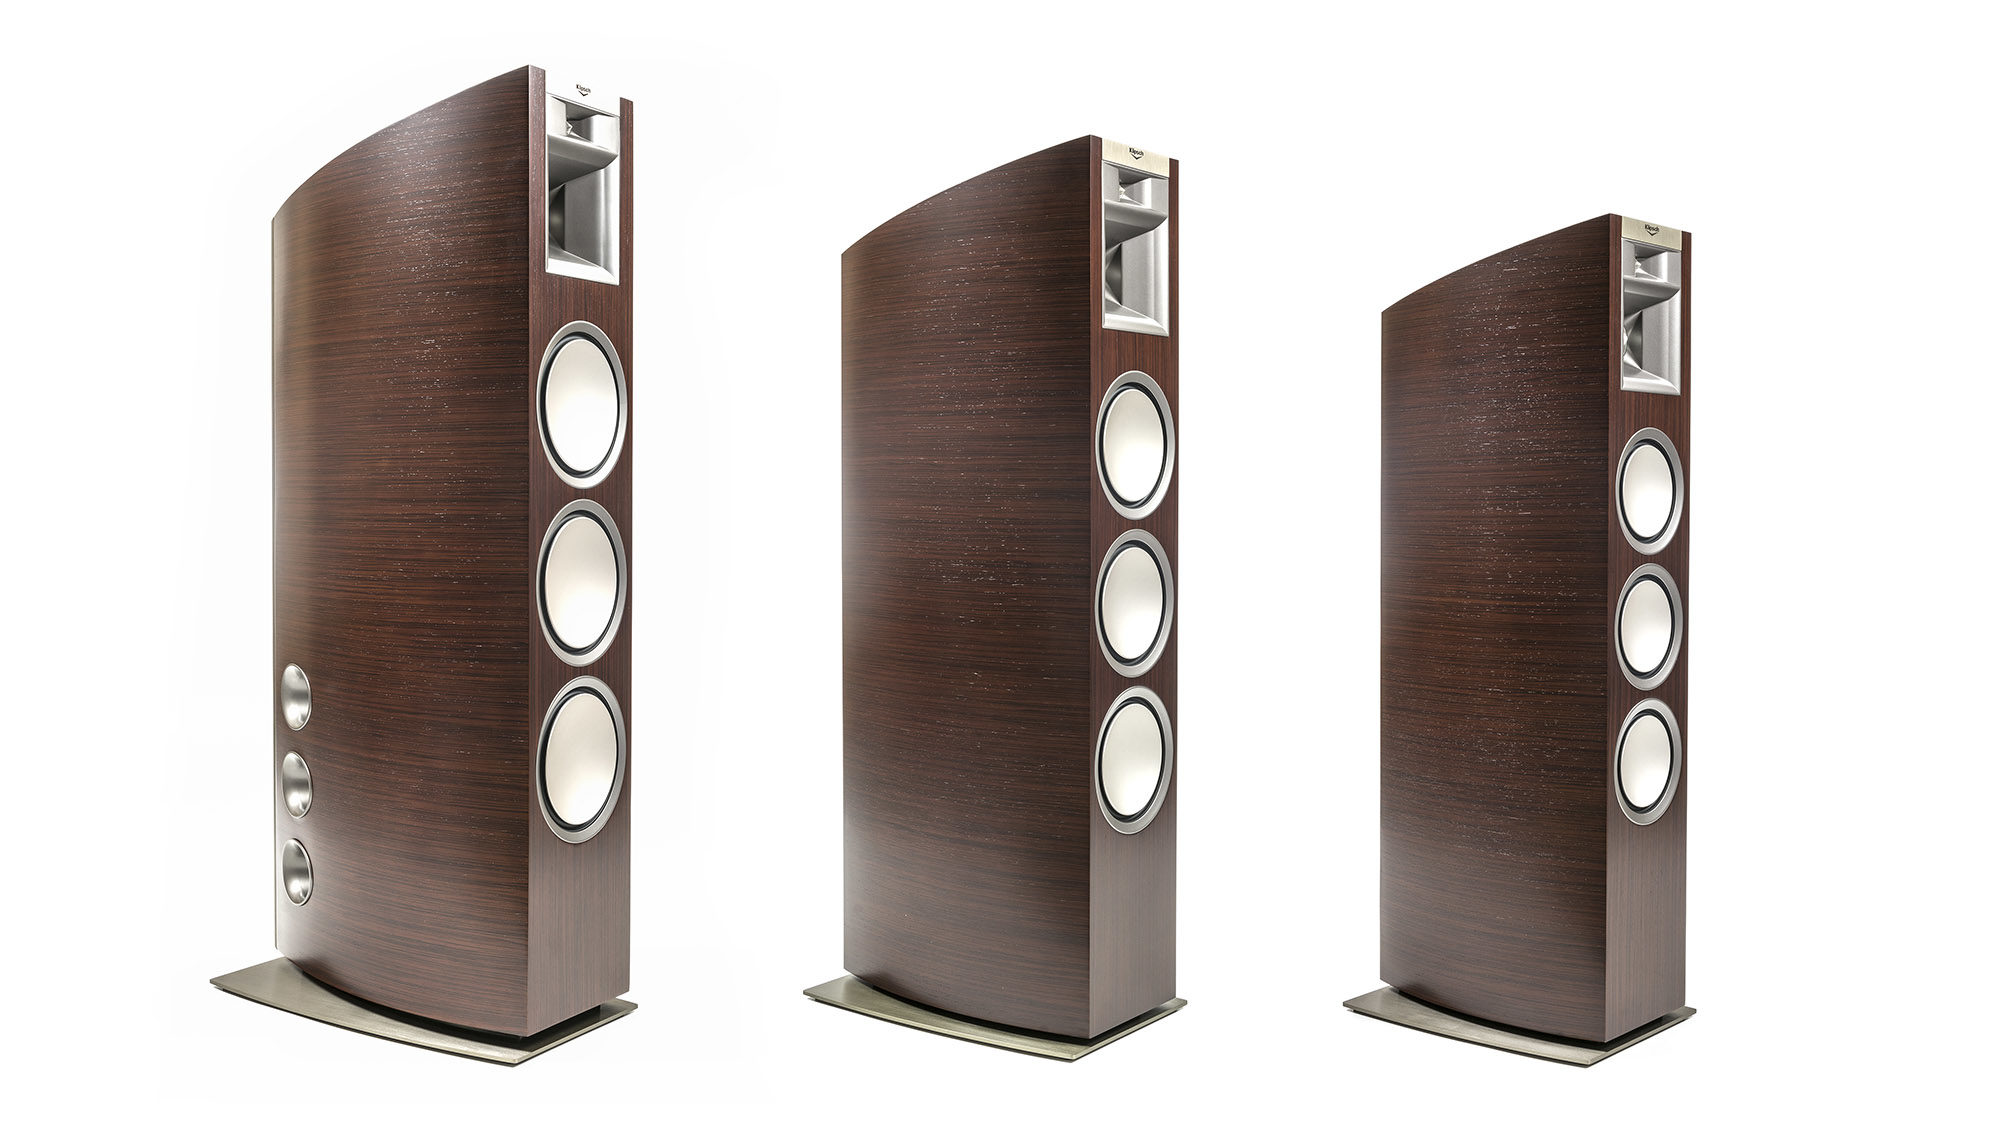 Enclosure Design likewise Sb1000 Eaw topic1894 additionally Horn Speakers Design together with Klipsch P38 F In Pakistan further Rocky Mountain Audio Fest 2014 Digital And Stand Mount Speakers. on midrange cabinet designs